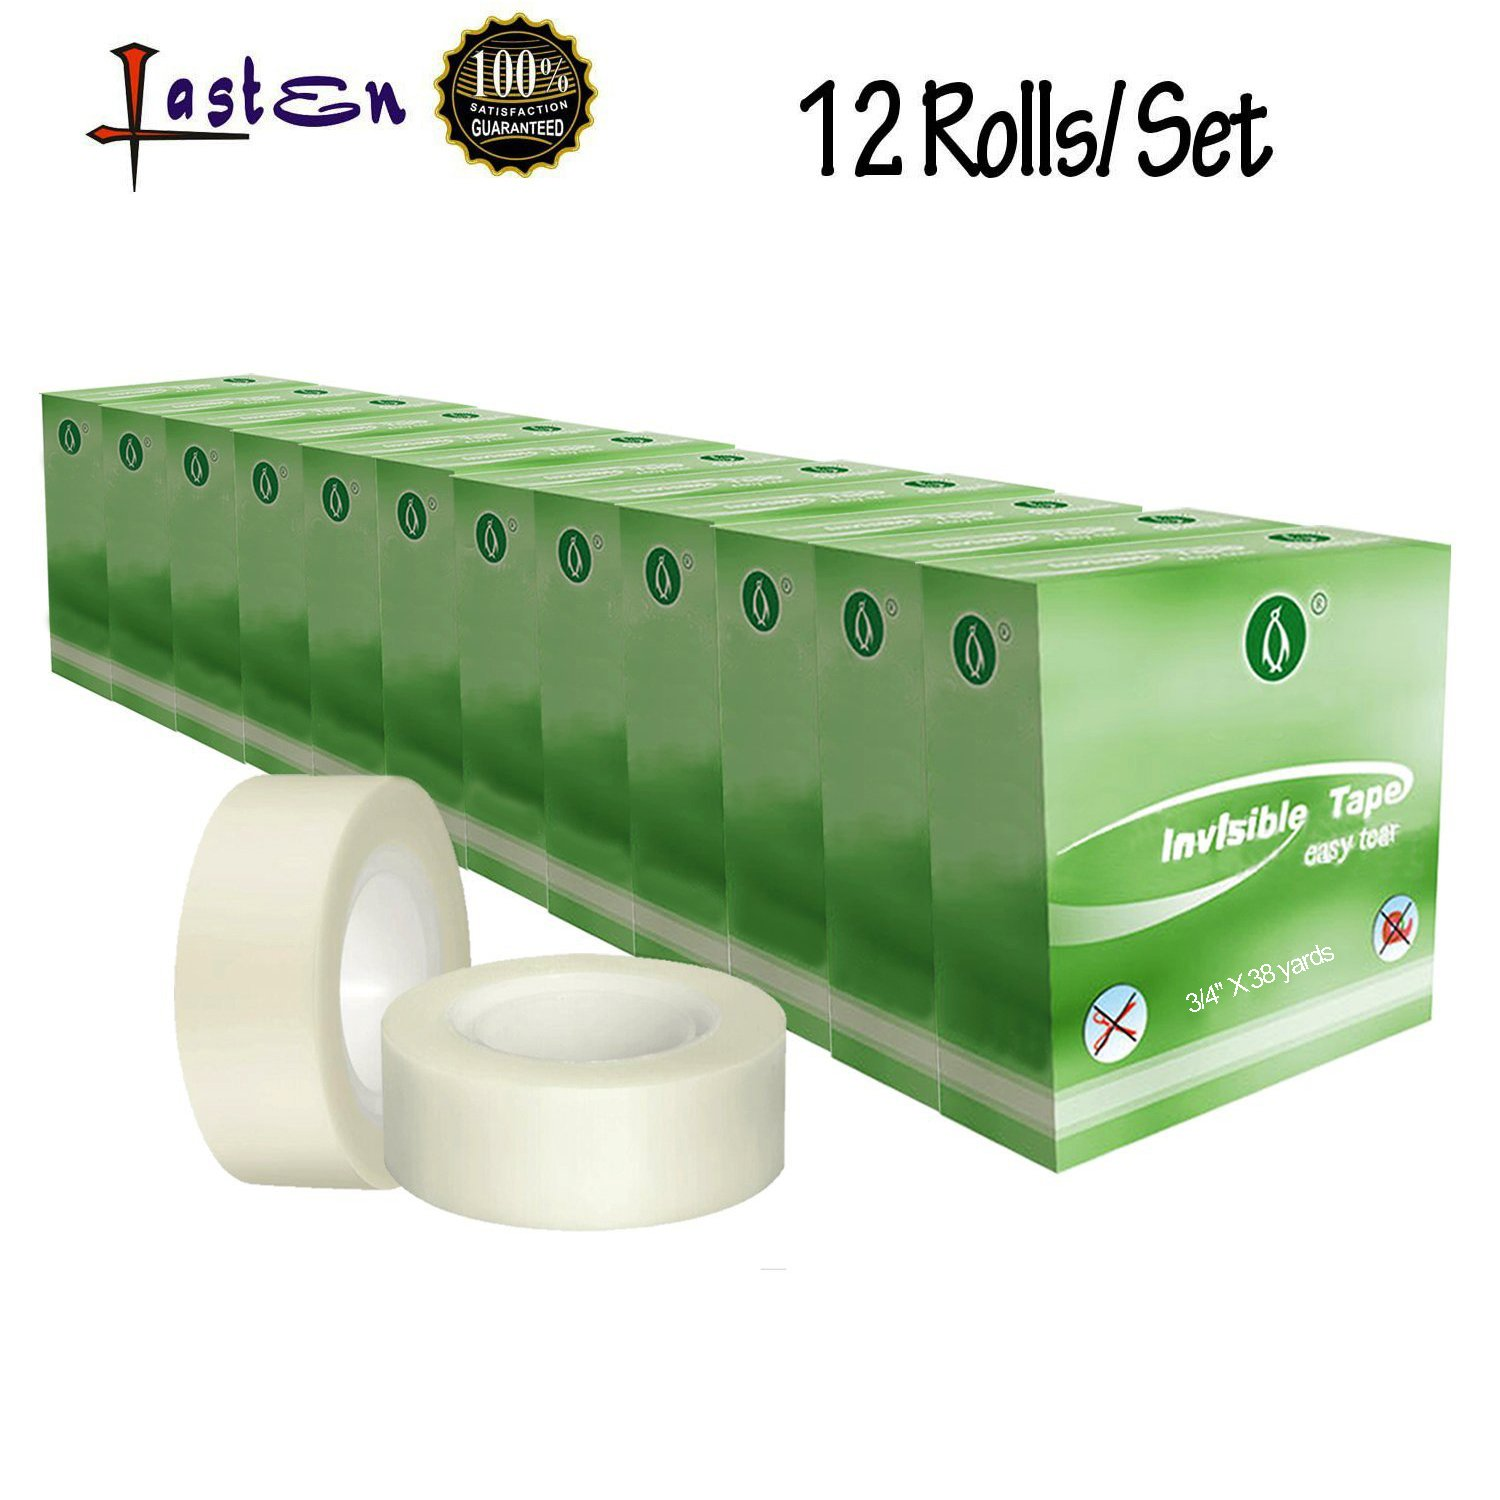 12 Rolls Invisible Tape, Hand Tearable Mending Tape 3/4 Inches X 38 Yards for Office, School and Home By Lasten